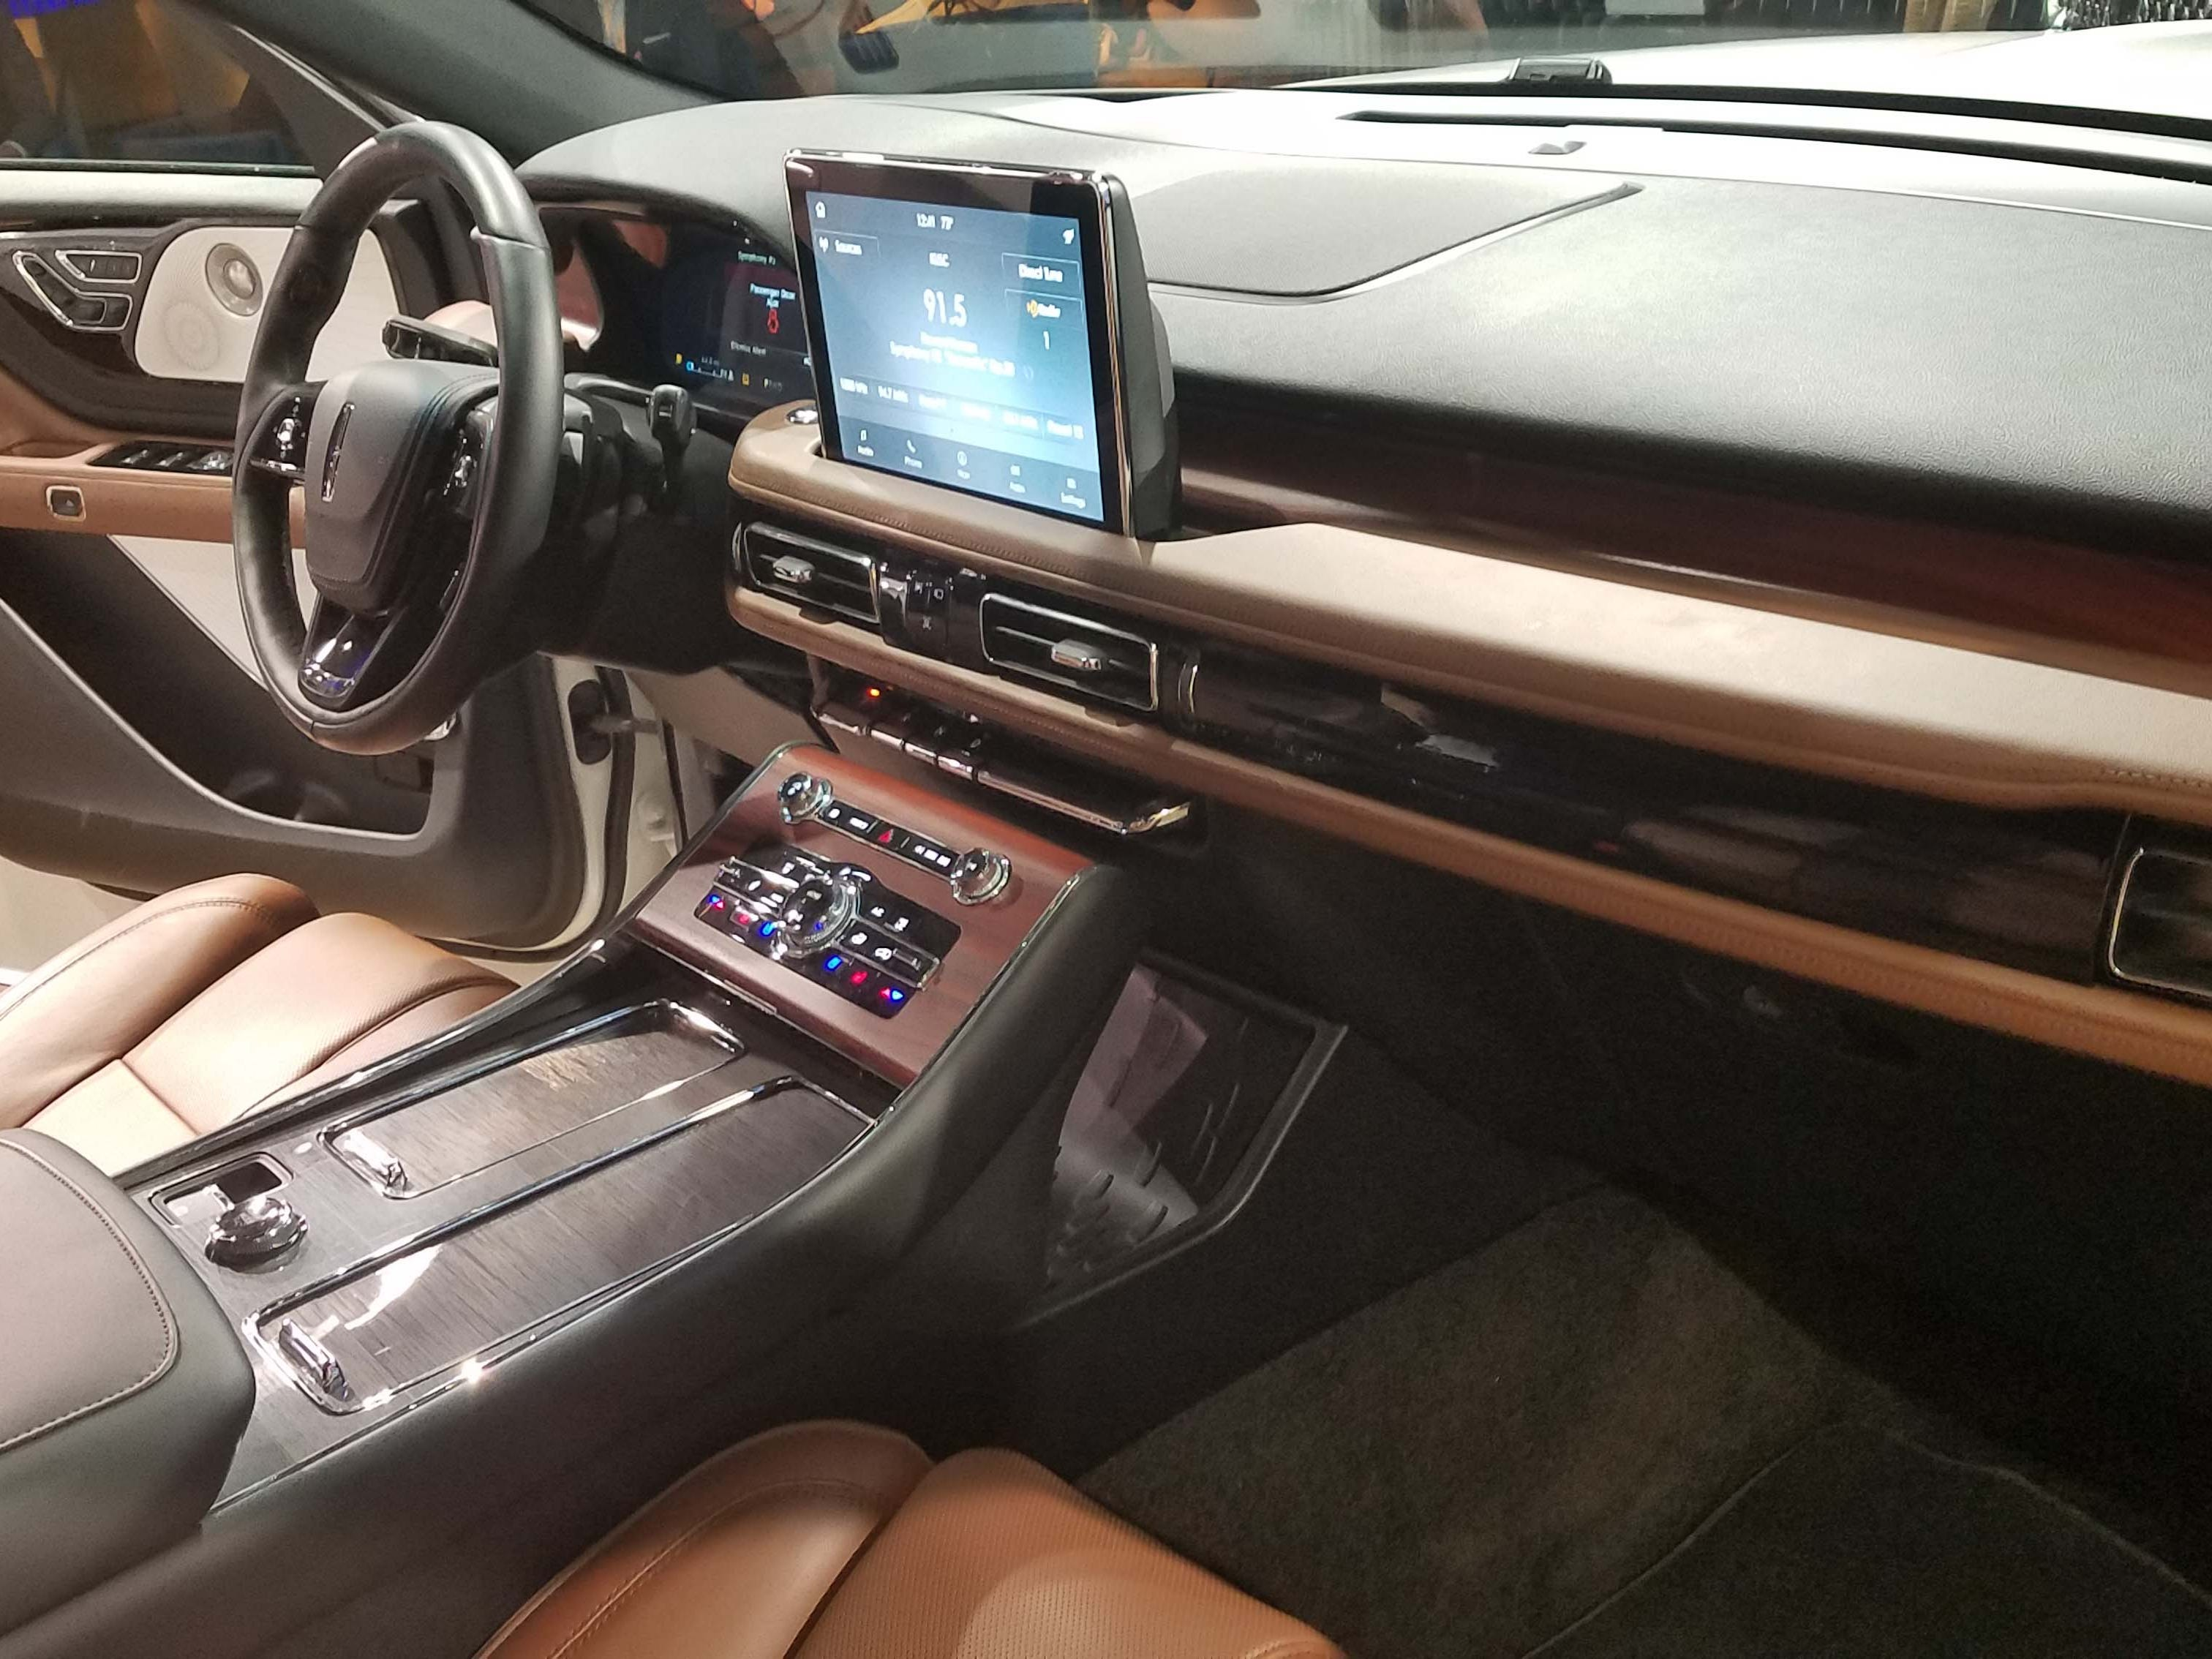 The Lincoln Aviator's interior is reminiscent of its opulent sibling, the Navigator.